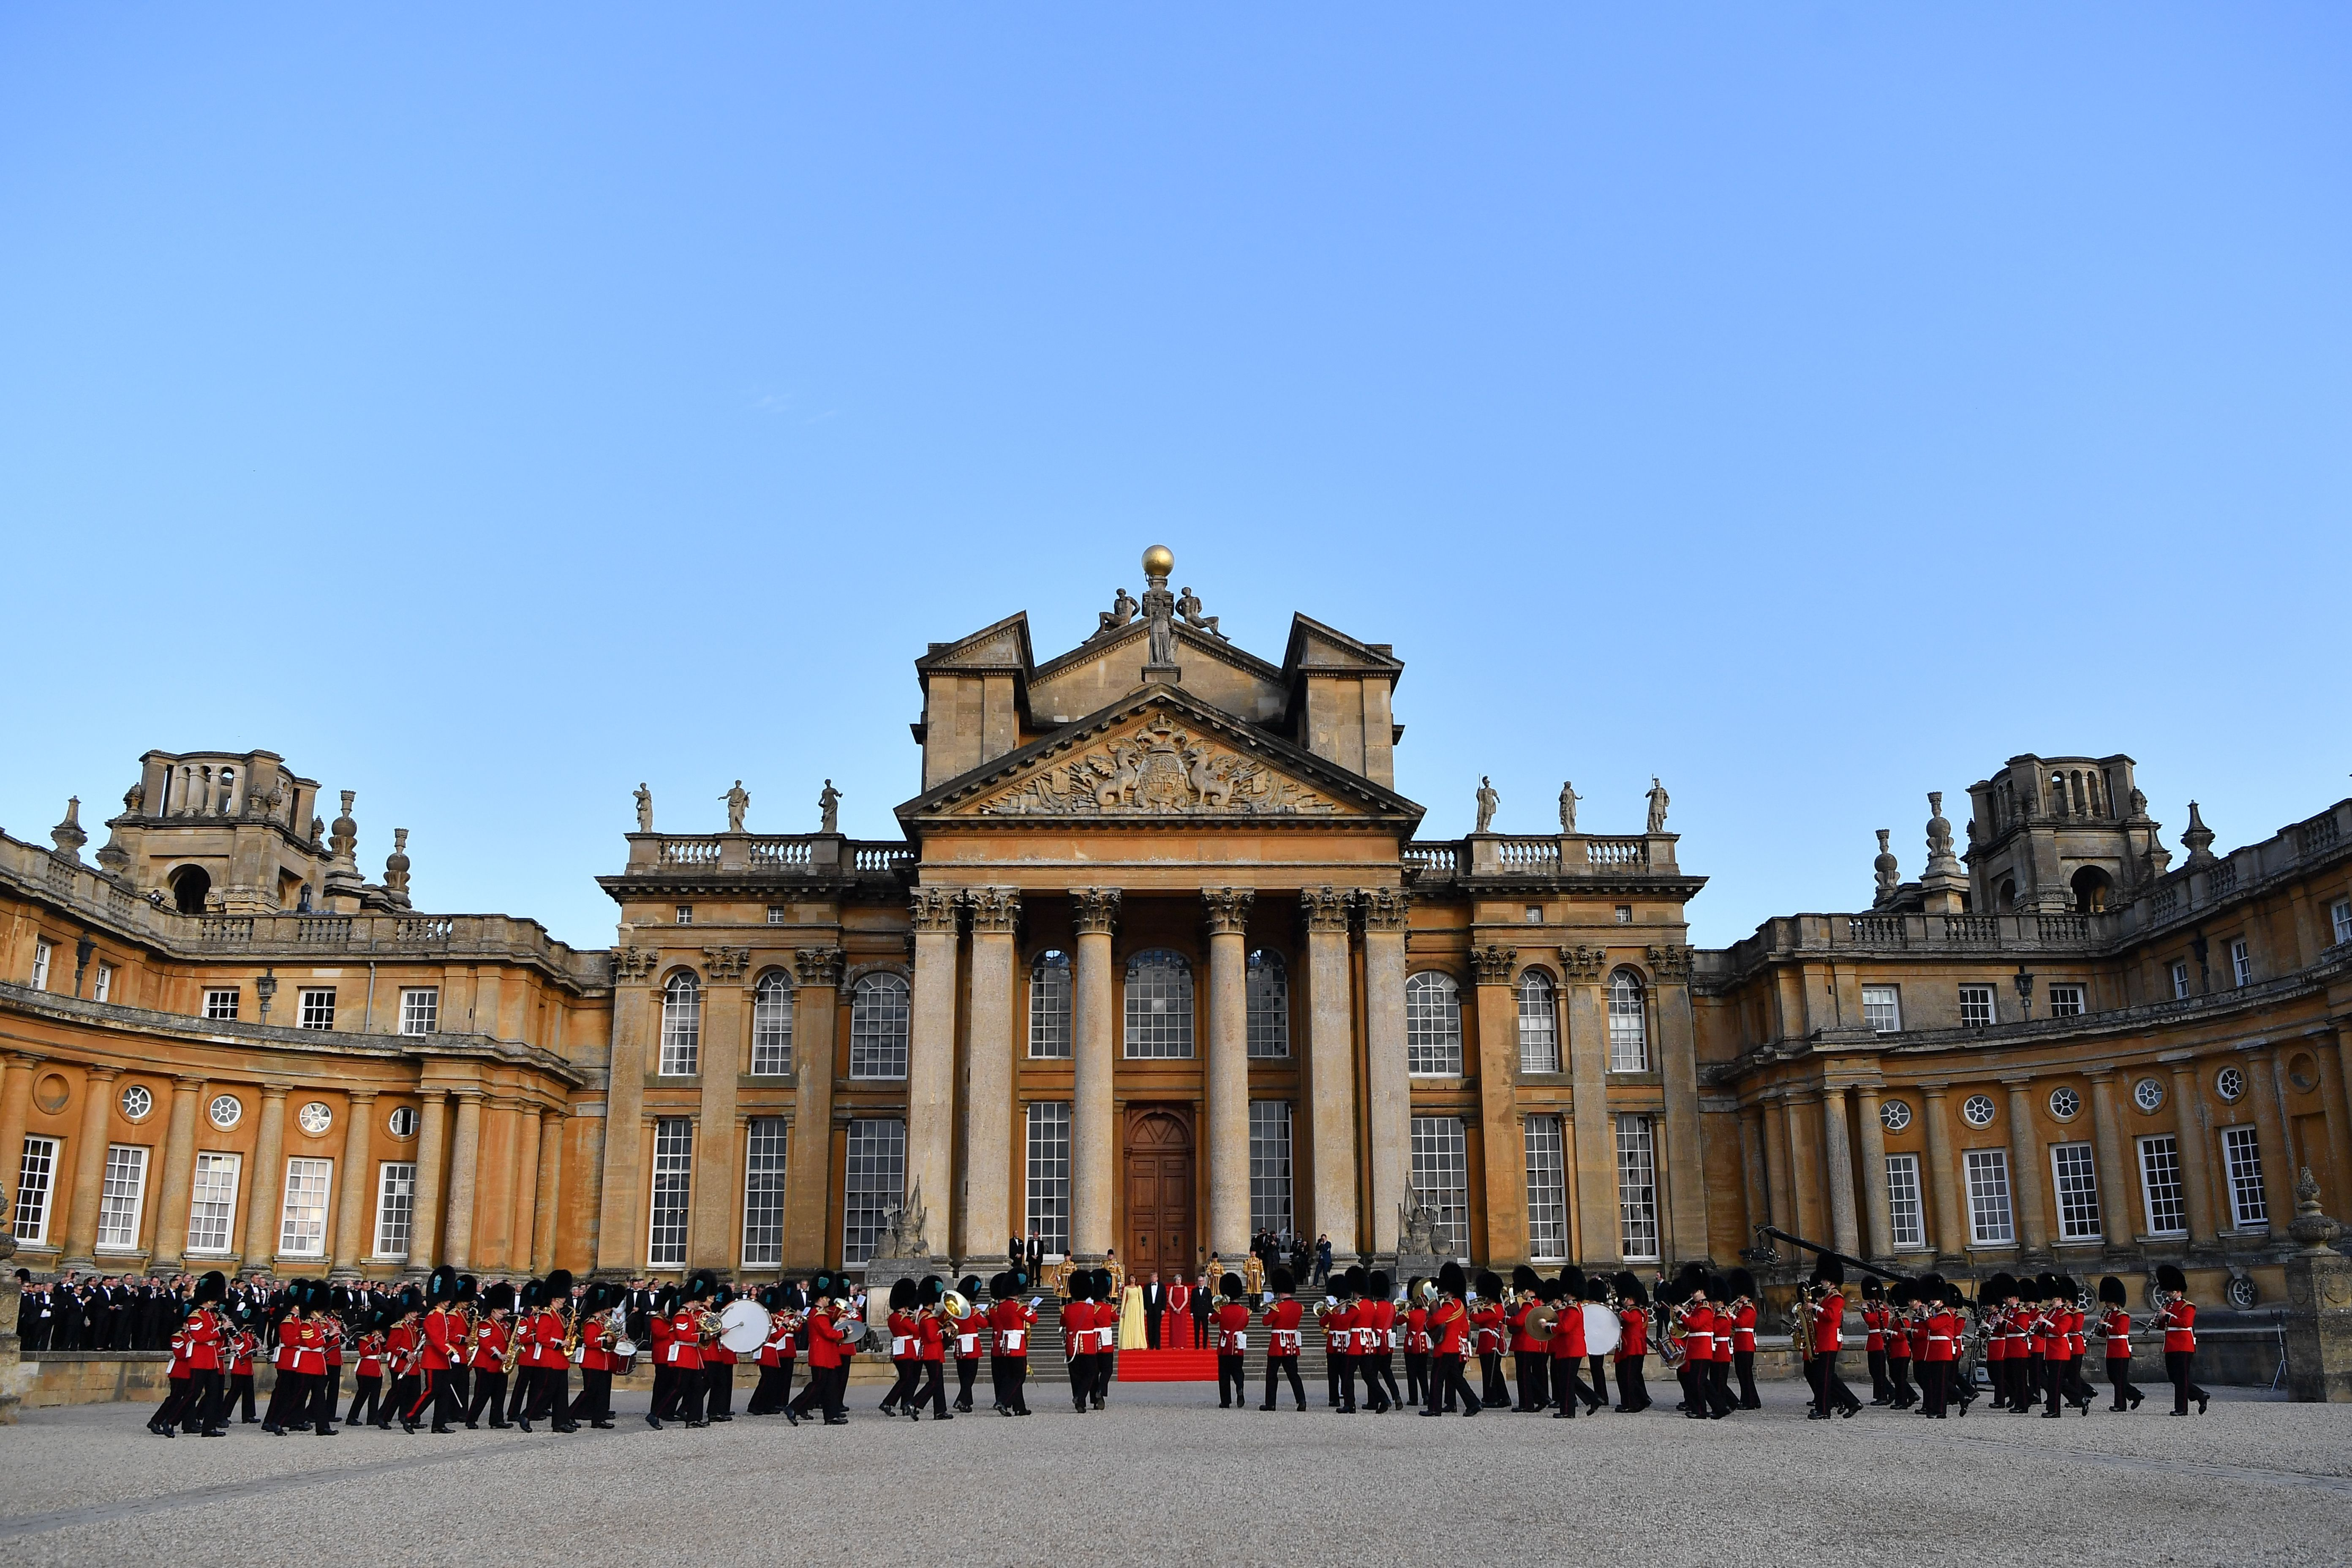 A ceremonial welcome outside the Great Court